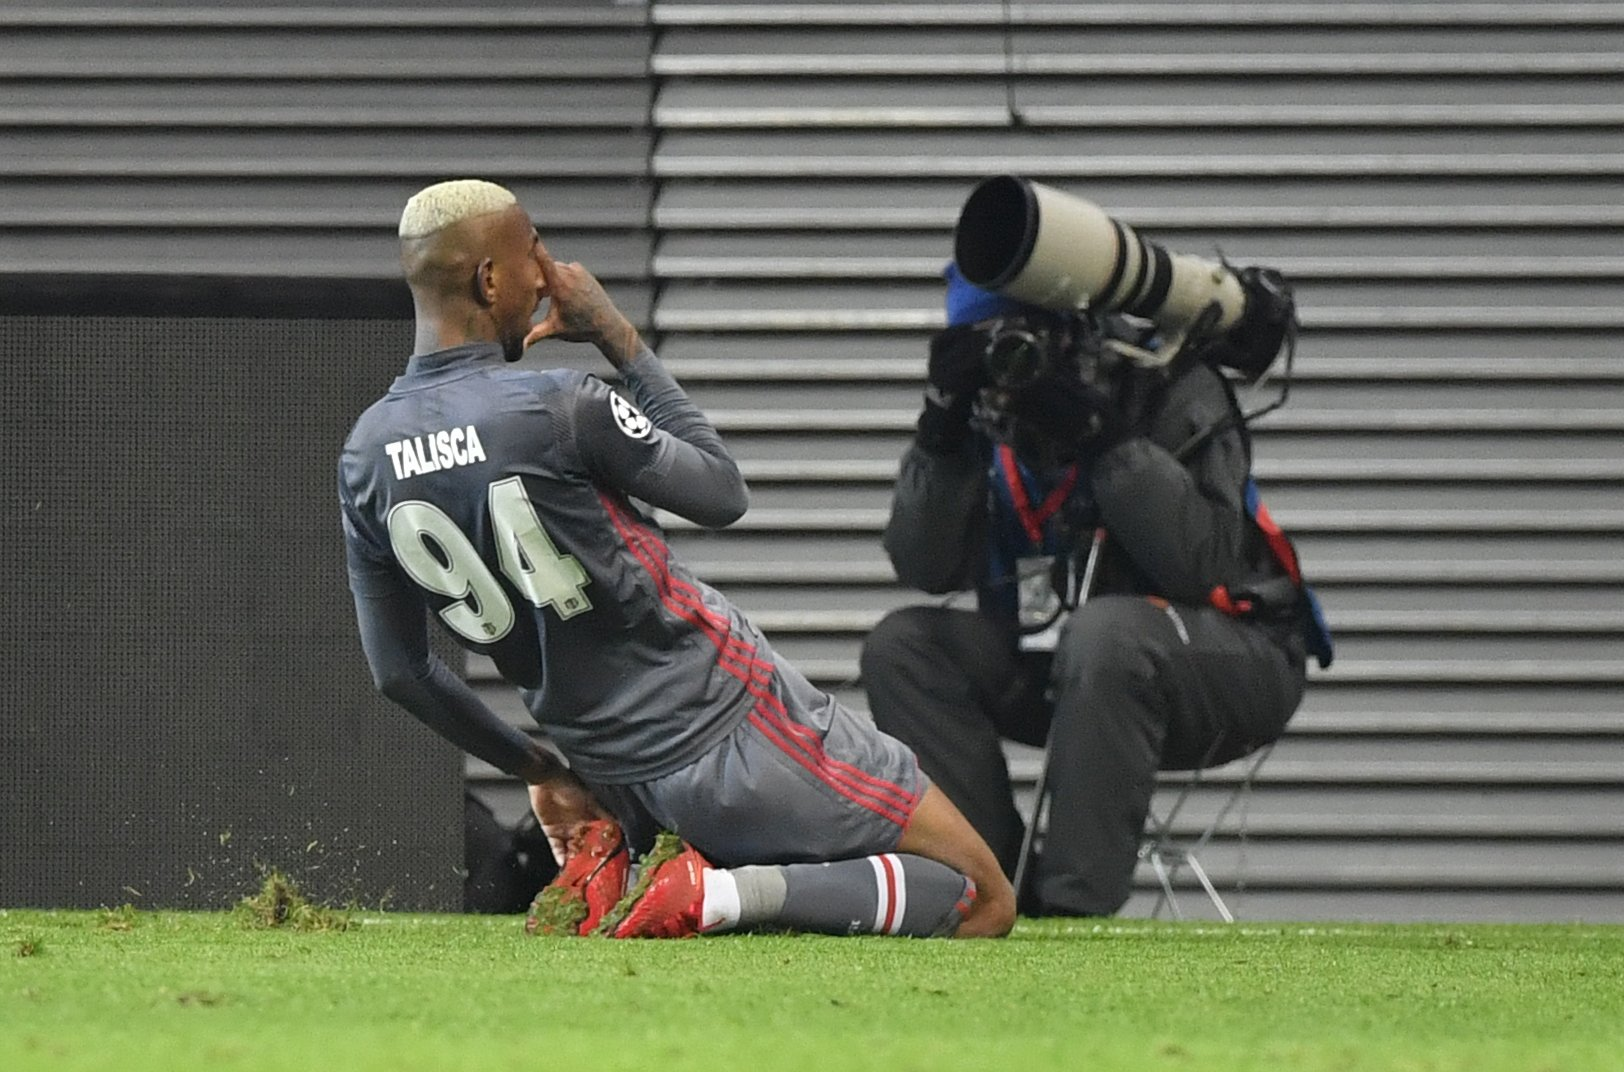 Talisca's first league double since May gets Beşiktaş back on track. ����  #UCL https://t.co/QFui4kHI9f